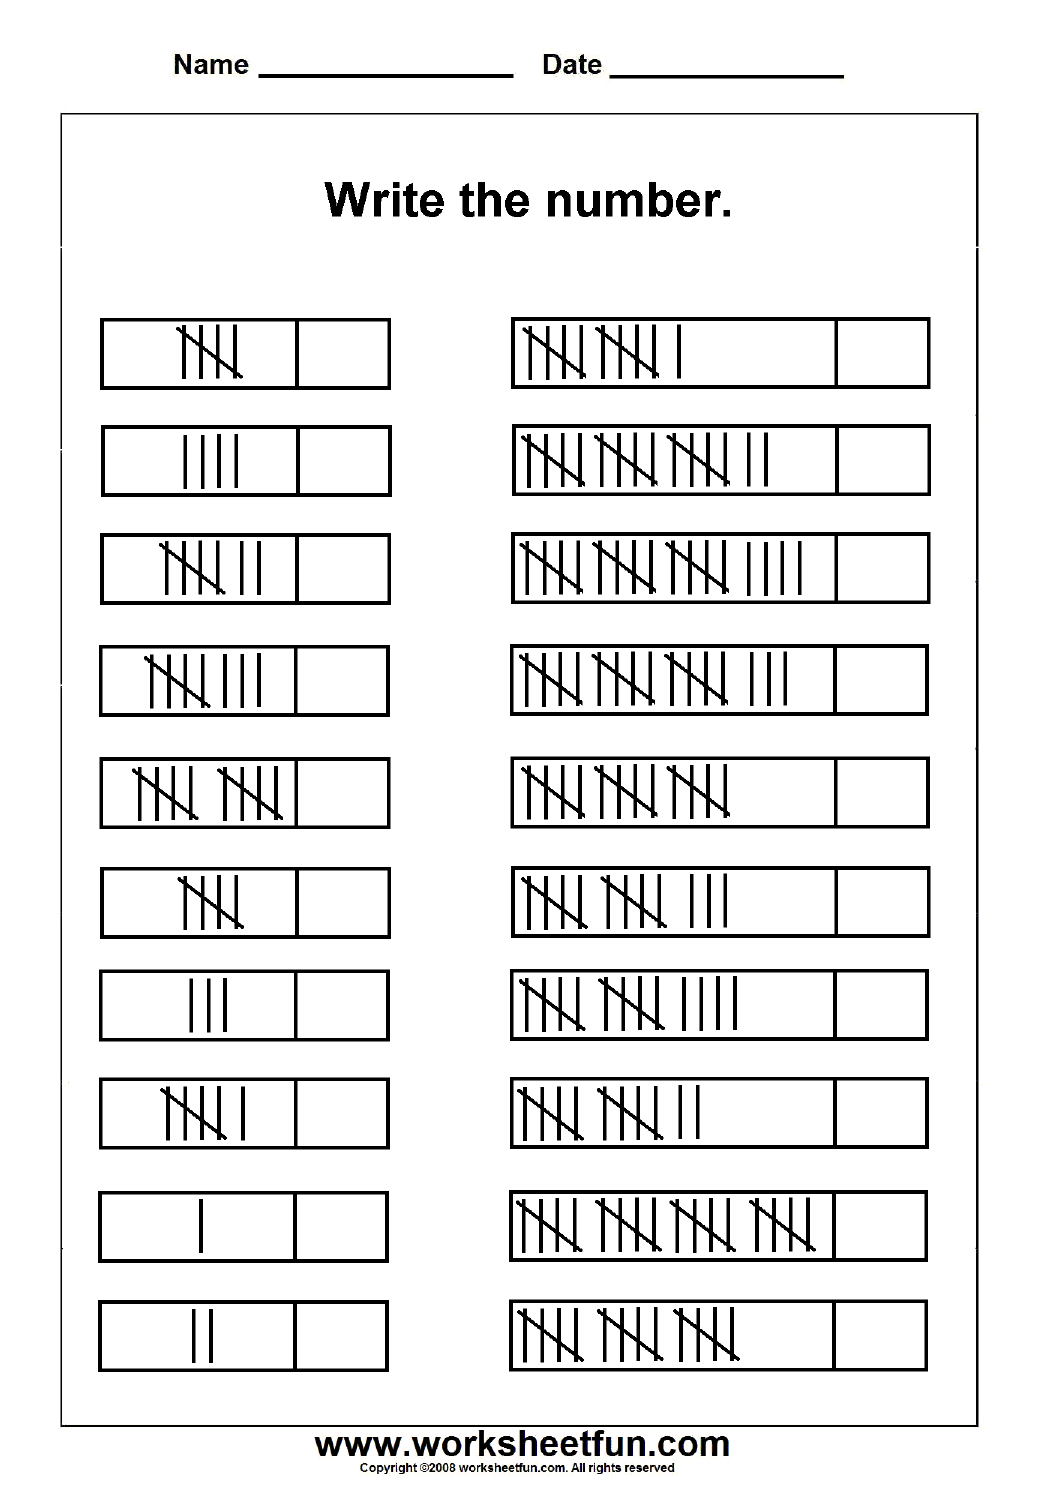 Uncategorized Tally Worksheets tally marks 1 worksheet worksheets teaching pinterest worksheets